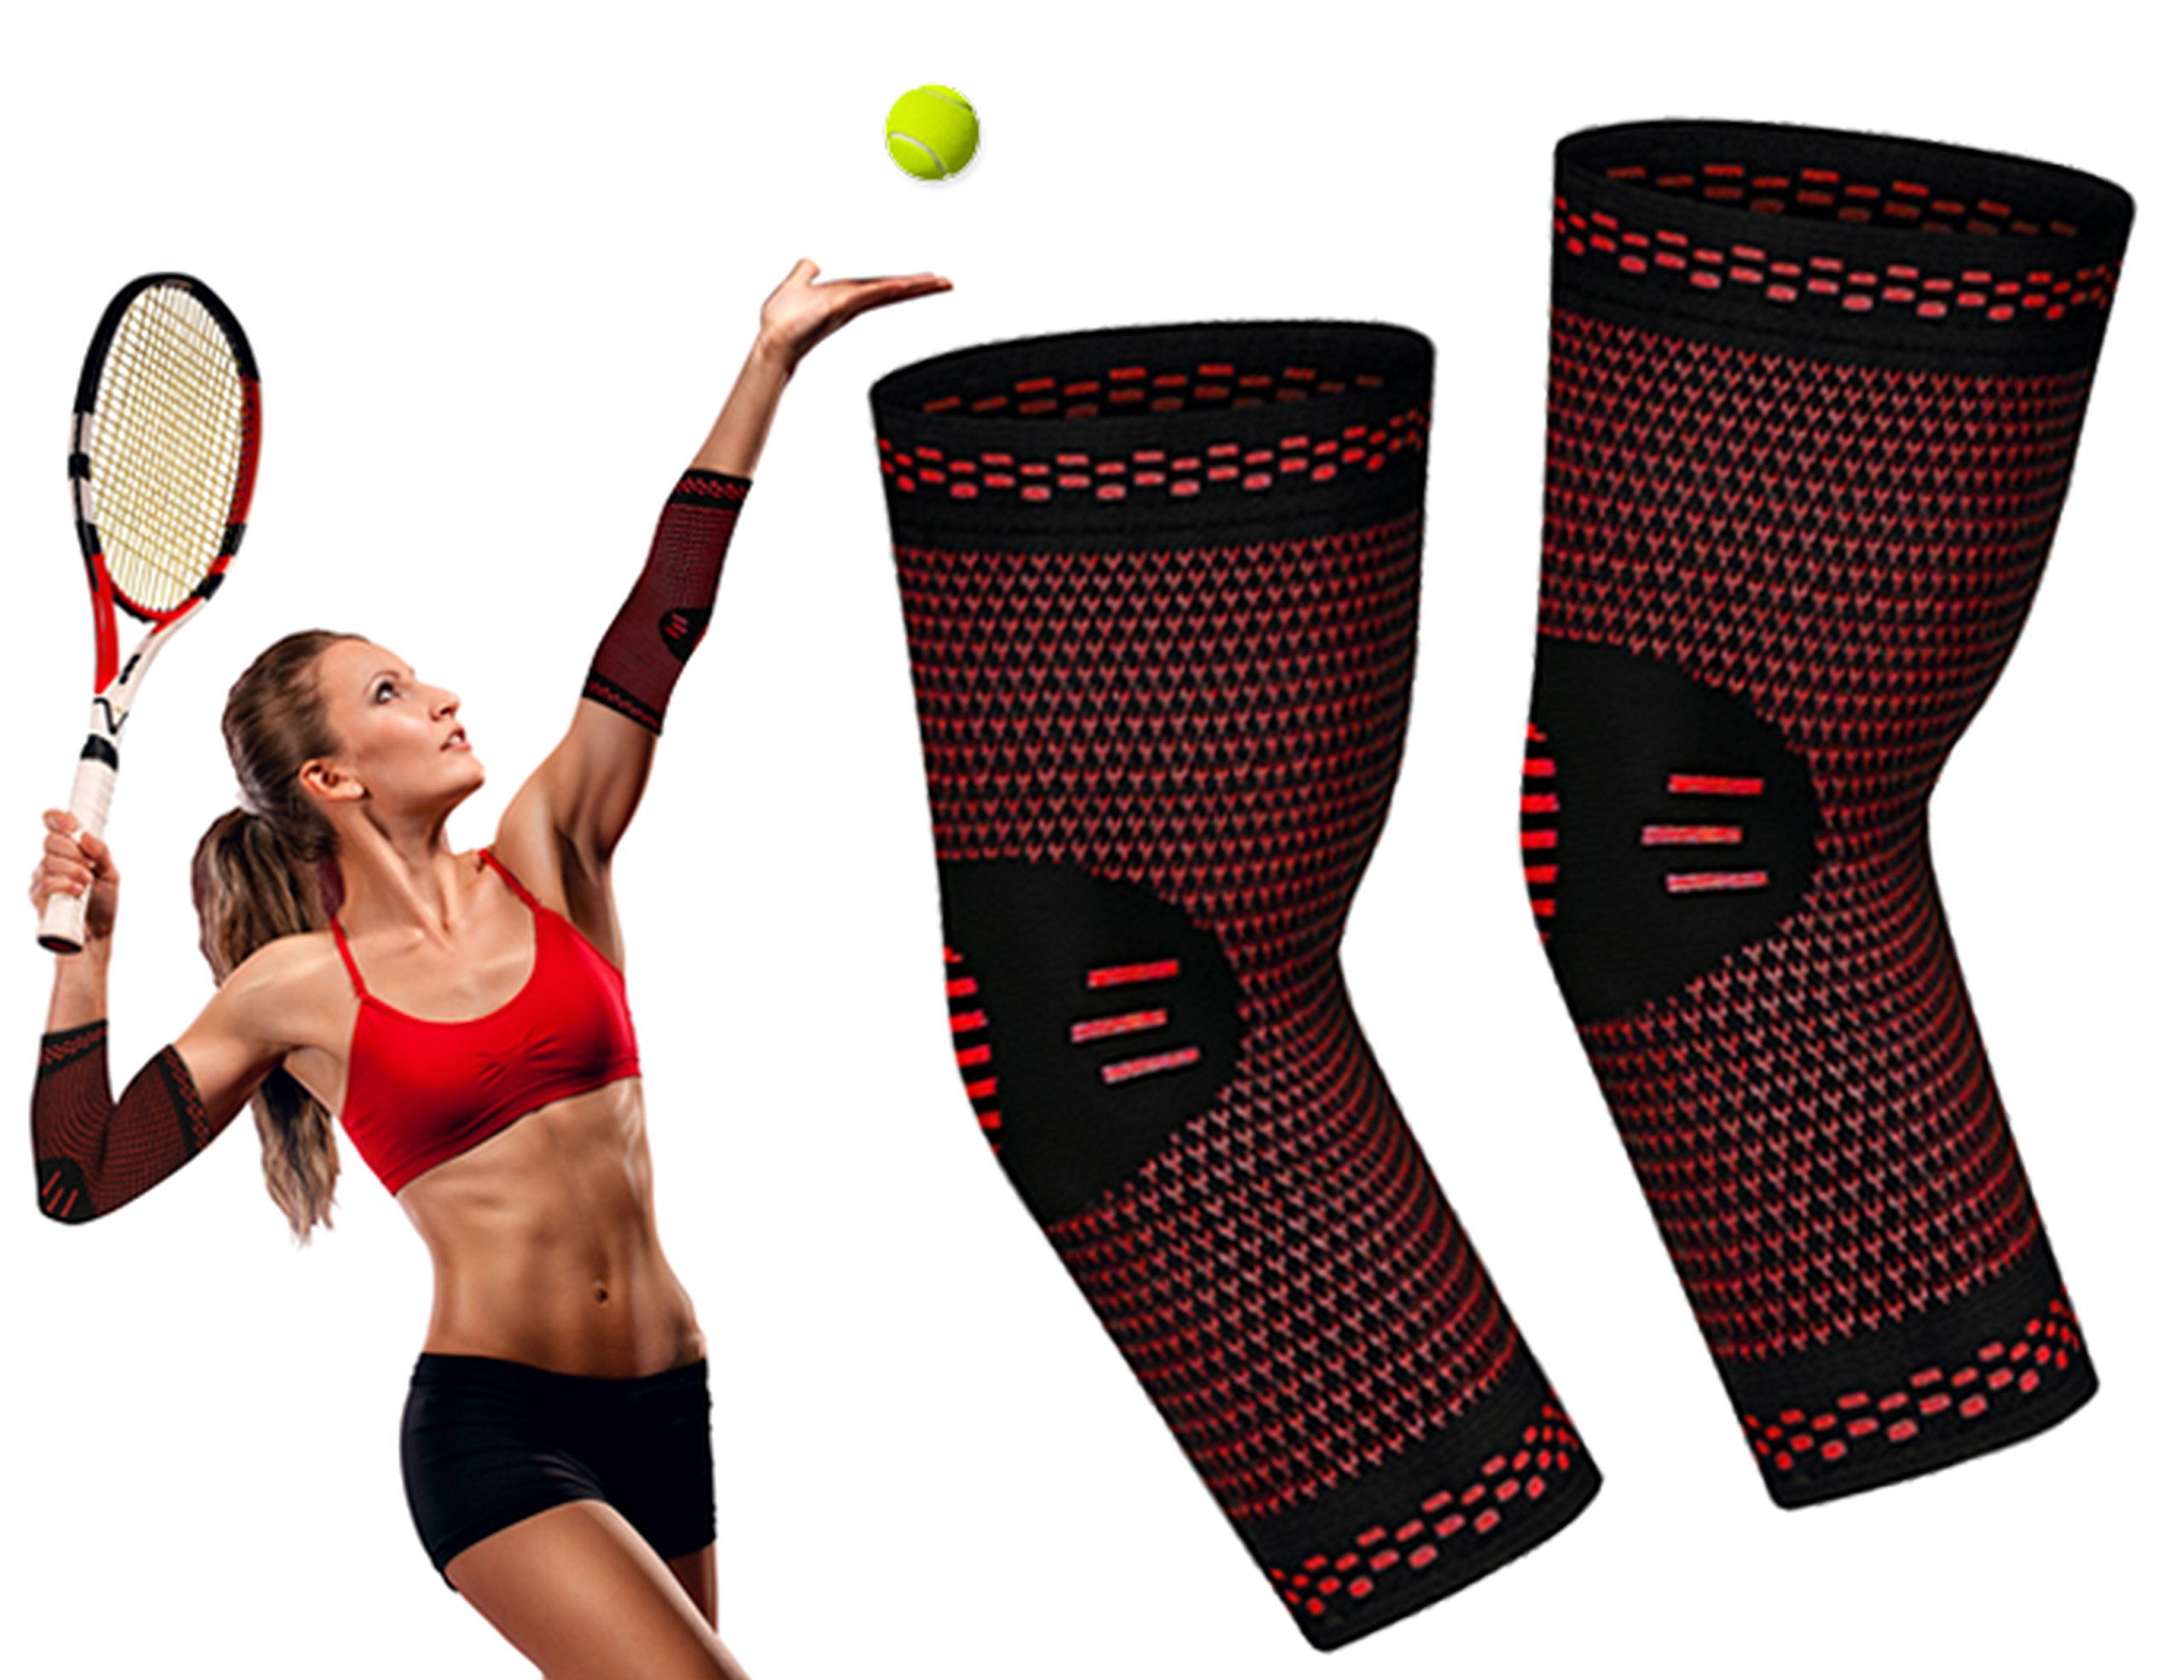 Elbow Brace RIMSports - Best Tennis Elbow Braces for Women & Men - Premium Elbow Sleeve - Best Compression Arm Sleeve- Preferred Large, Medium, Small Tennis Elbow Brace (Red, S)